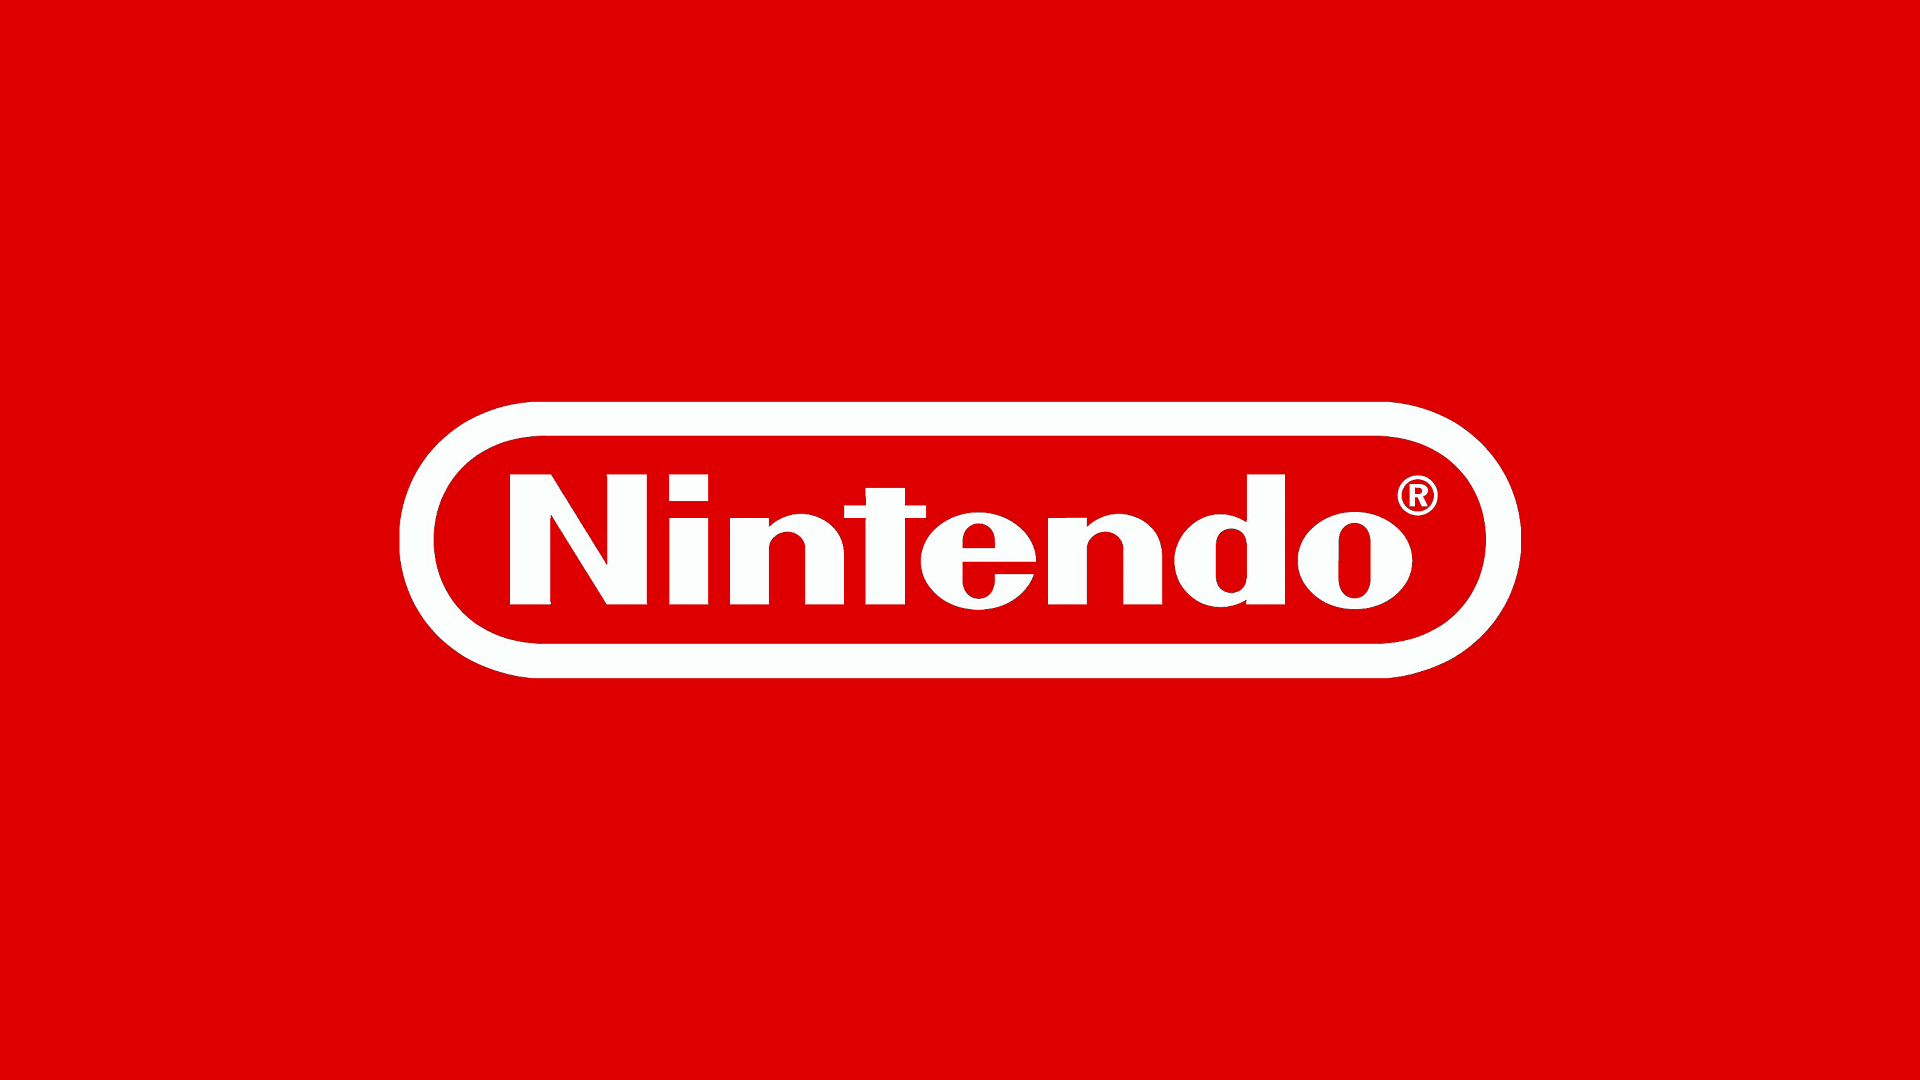 nintendo logo Microsoft Tried For A Surprising Partnership Before Creating The Xbox